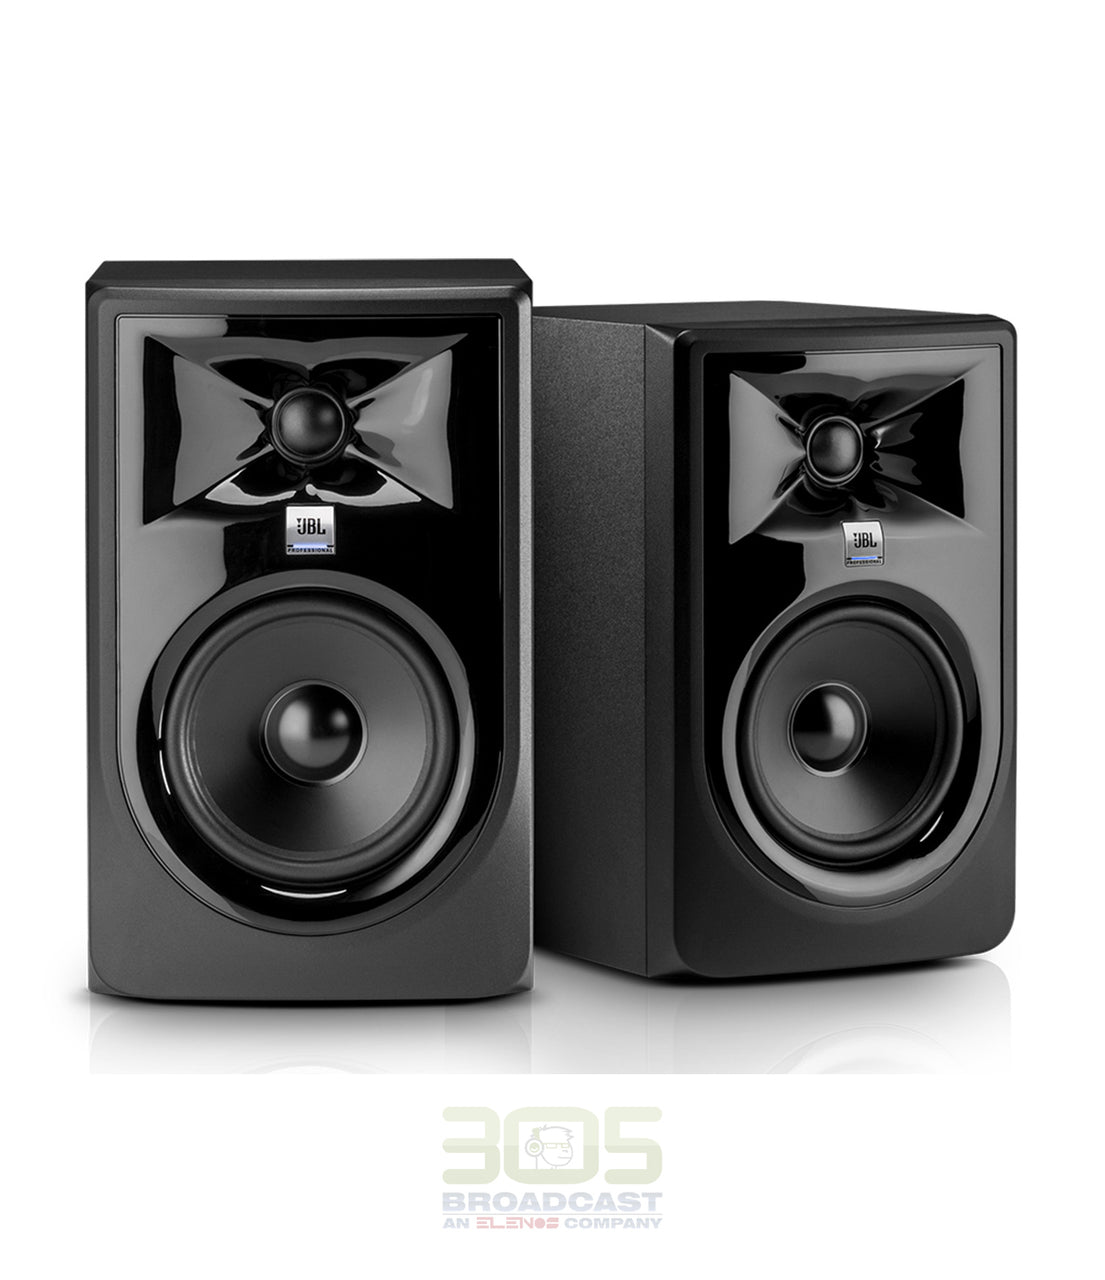 JBL Professional 308P MkII Next-Generation 8-Inch 2-Way Powered Studio Monitor - 305broadcast